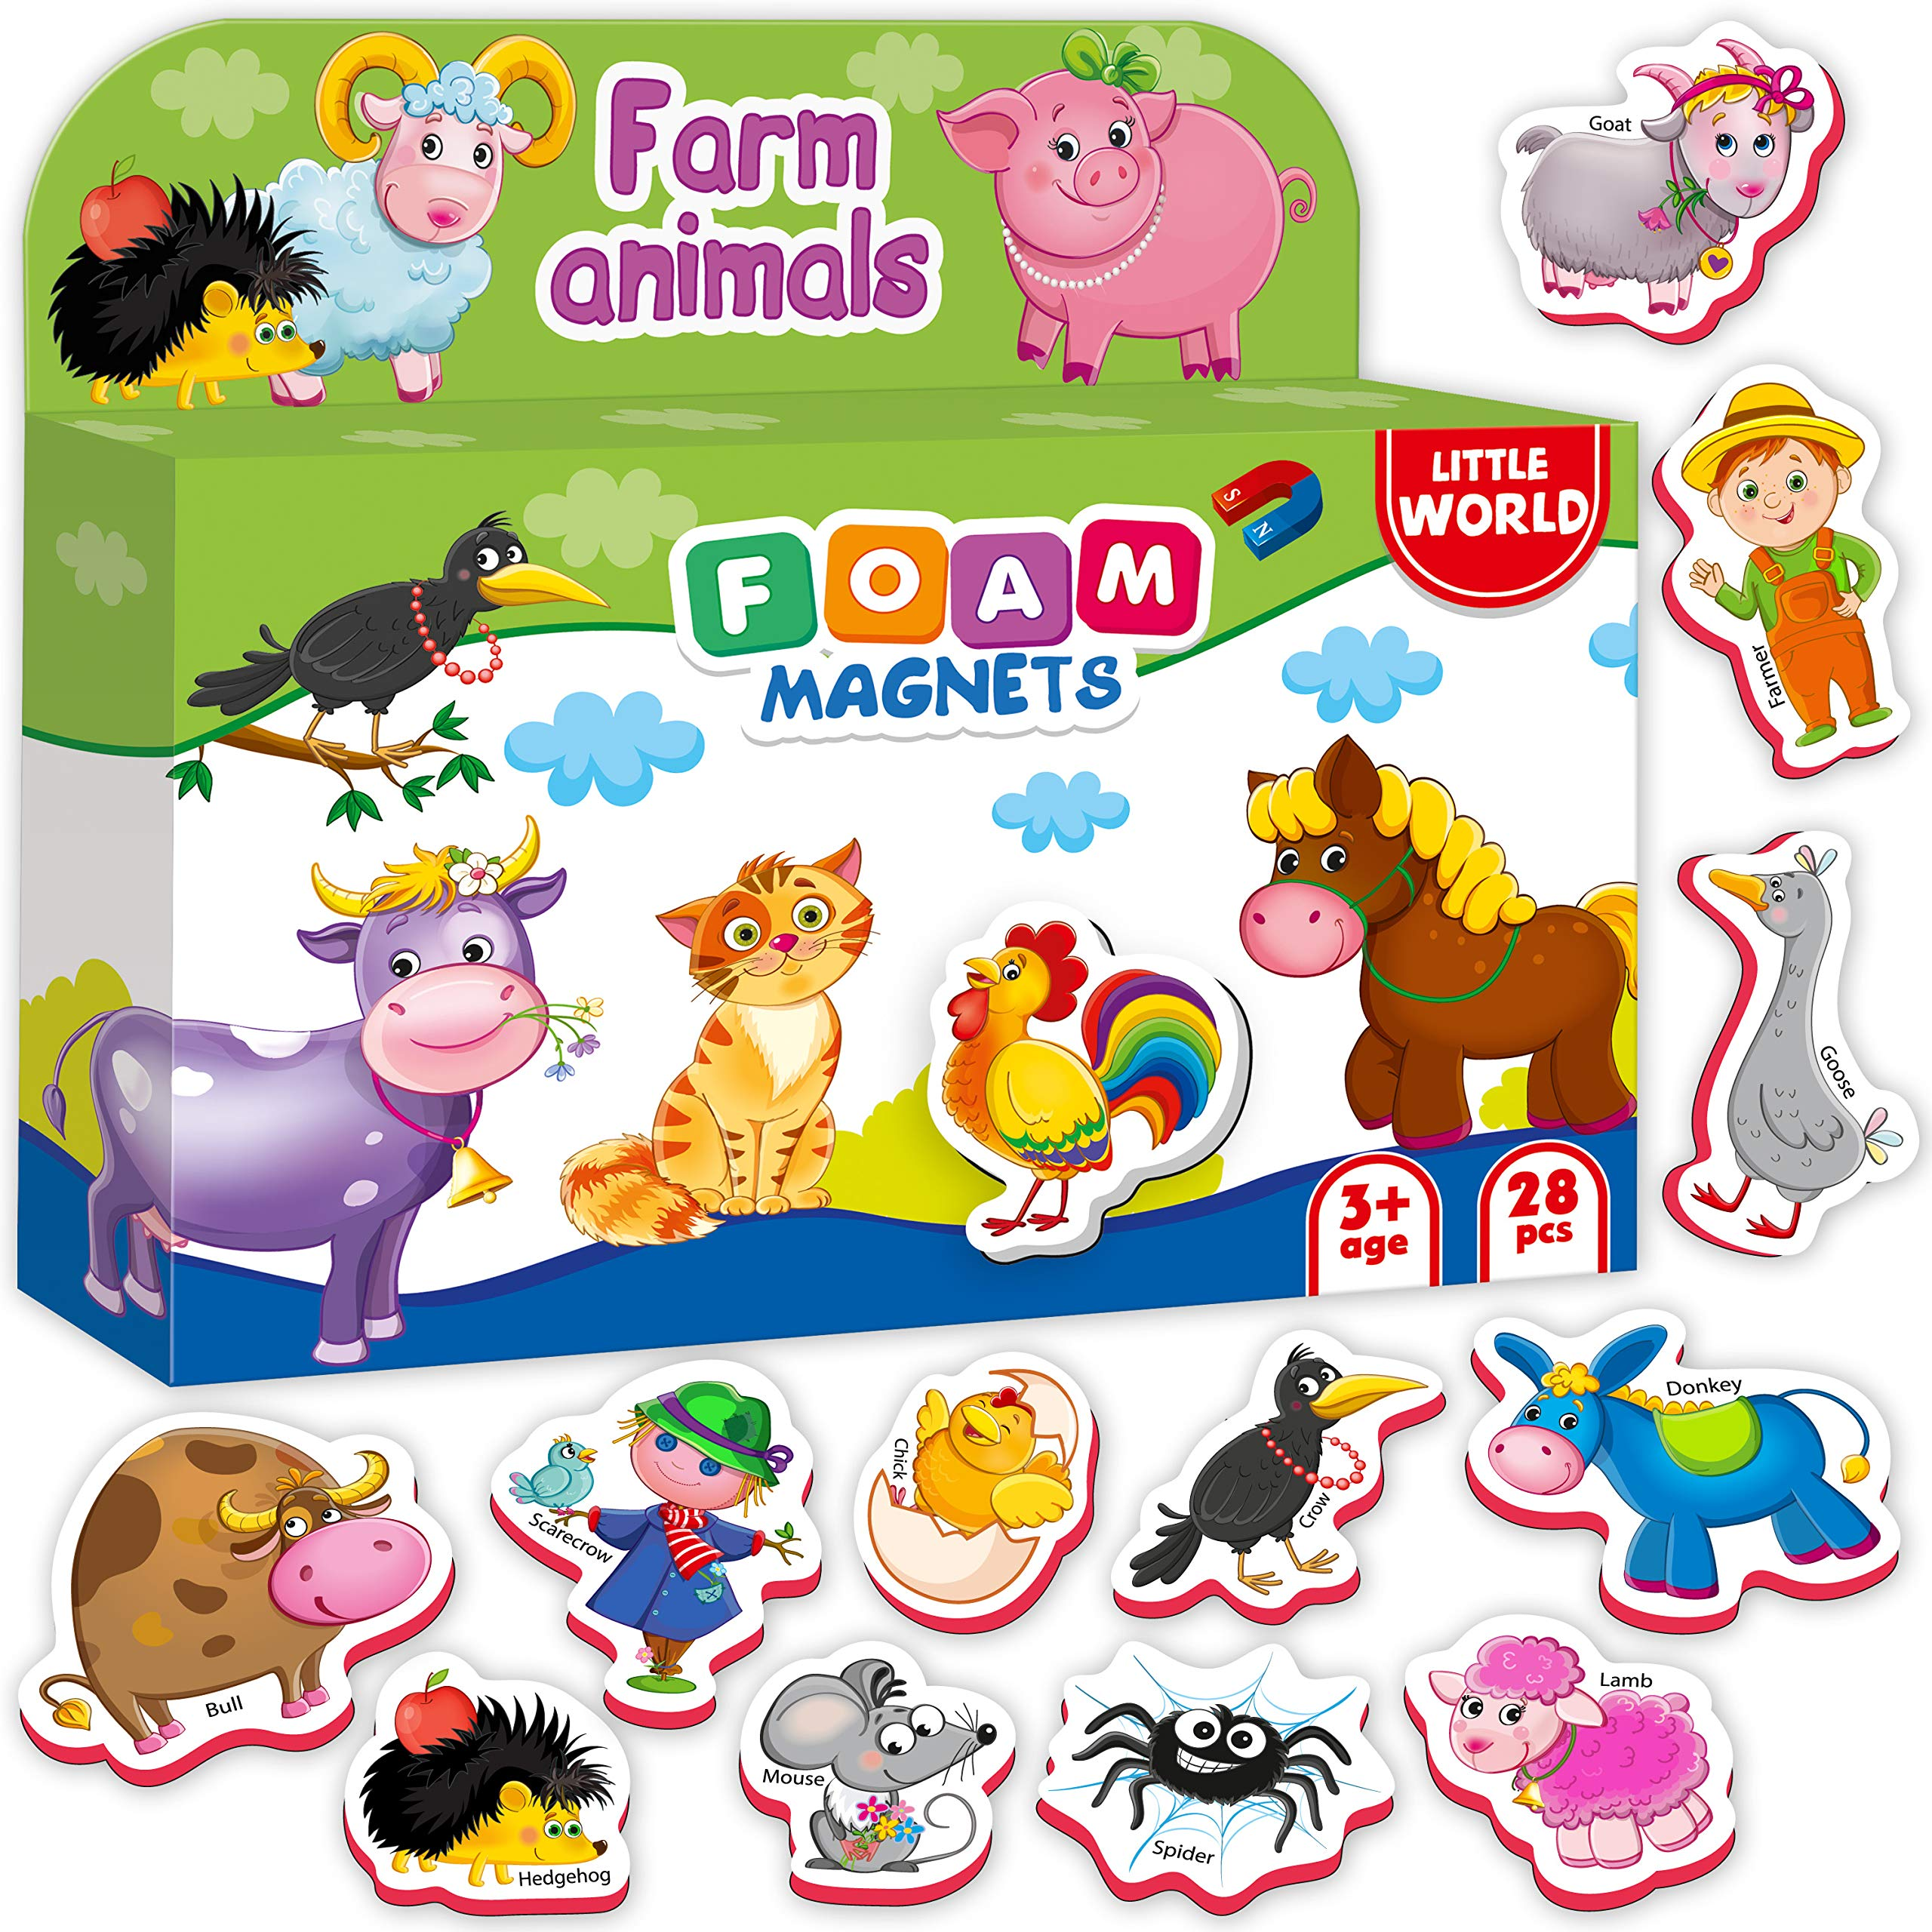 Fridge Magnets for Toddlers FARM Animals (28 pcs) - Refrigerator Magnets for kids - Kids magnets - Toddler magnets - Kid Magnets - Animal Magnets - Baby Magnets - Magnetic Toys Animals for Girls Boys by Little World